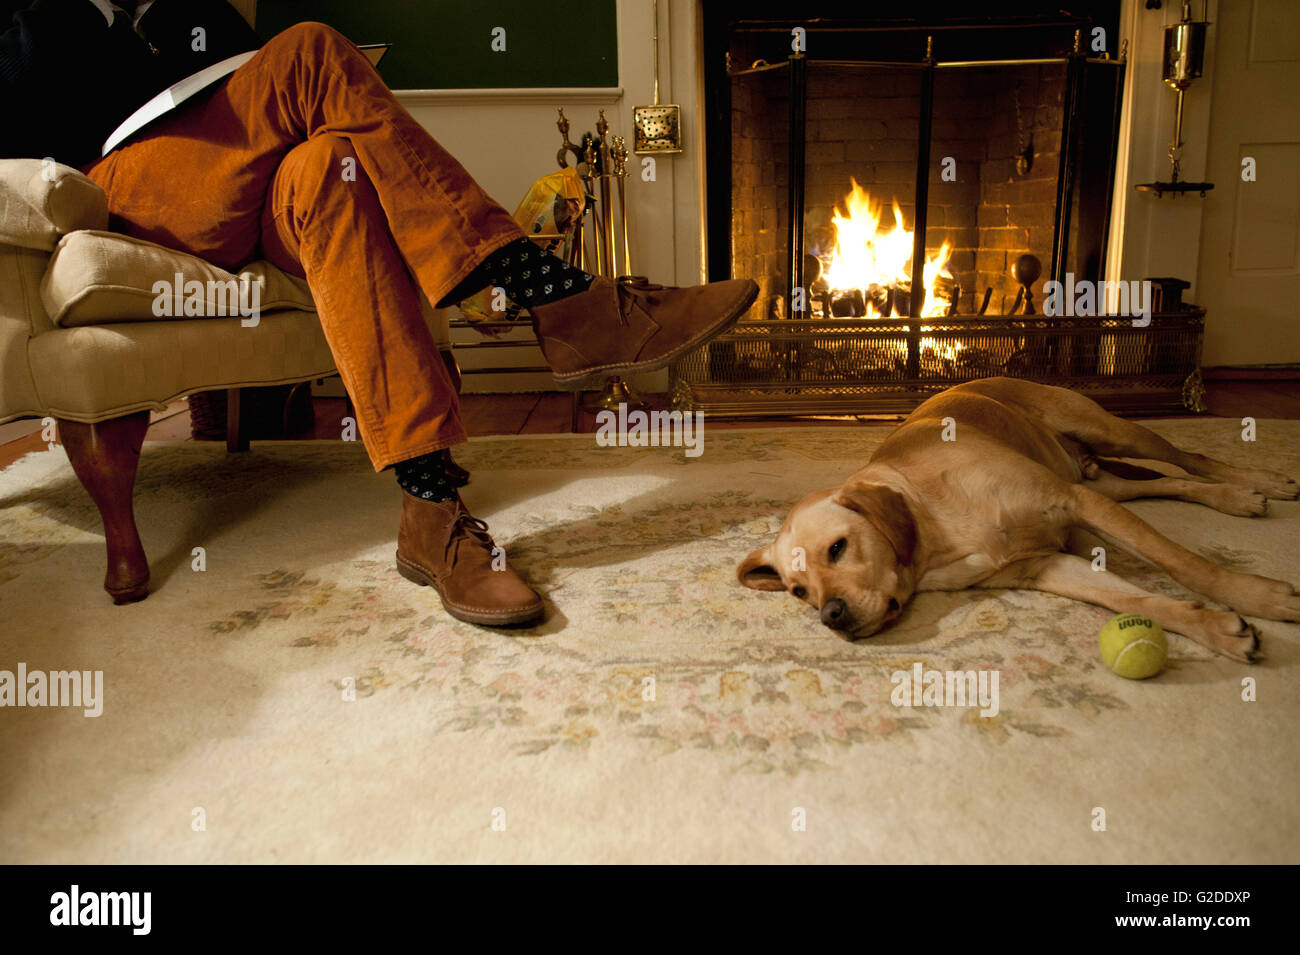 Dog Laying at Man's Feet by Fireplace - Stock Image